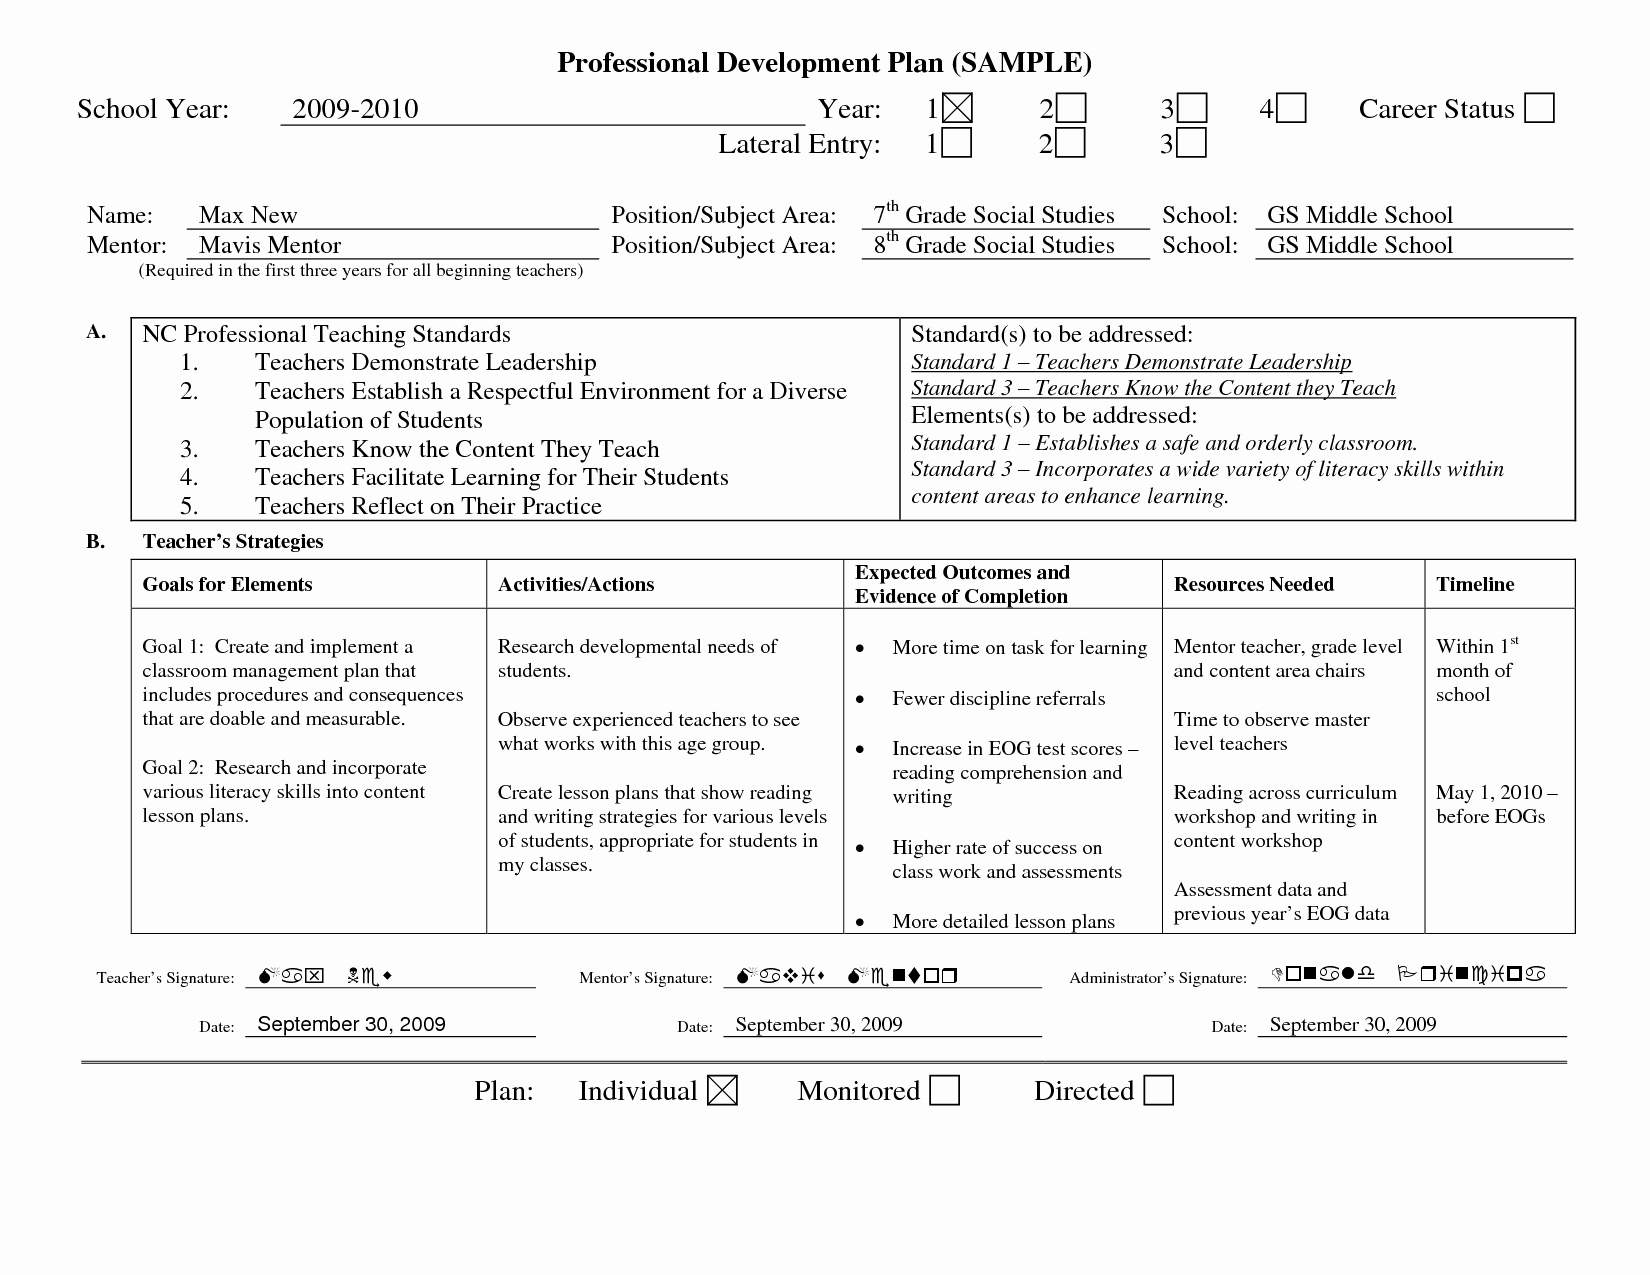 Personal Learning Plan Template New Professional Learning Plan Examples Google Search